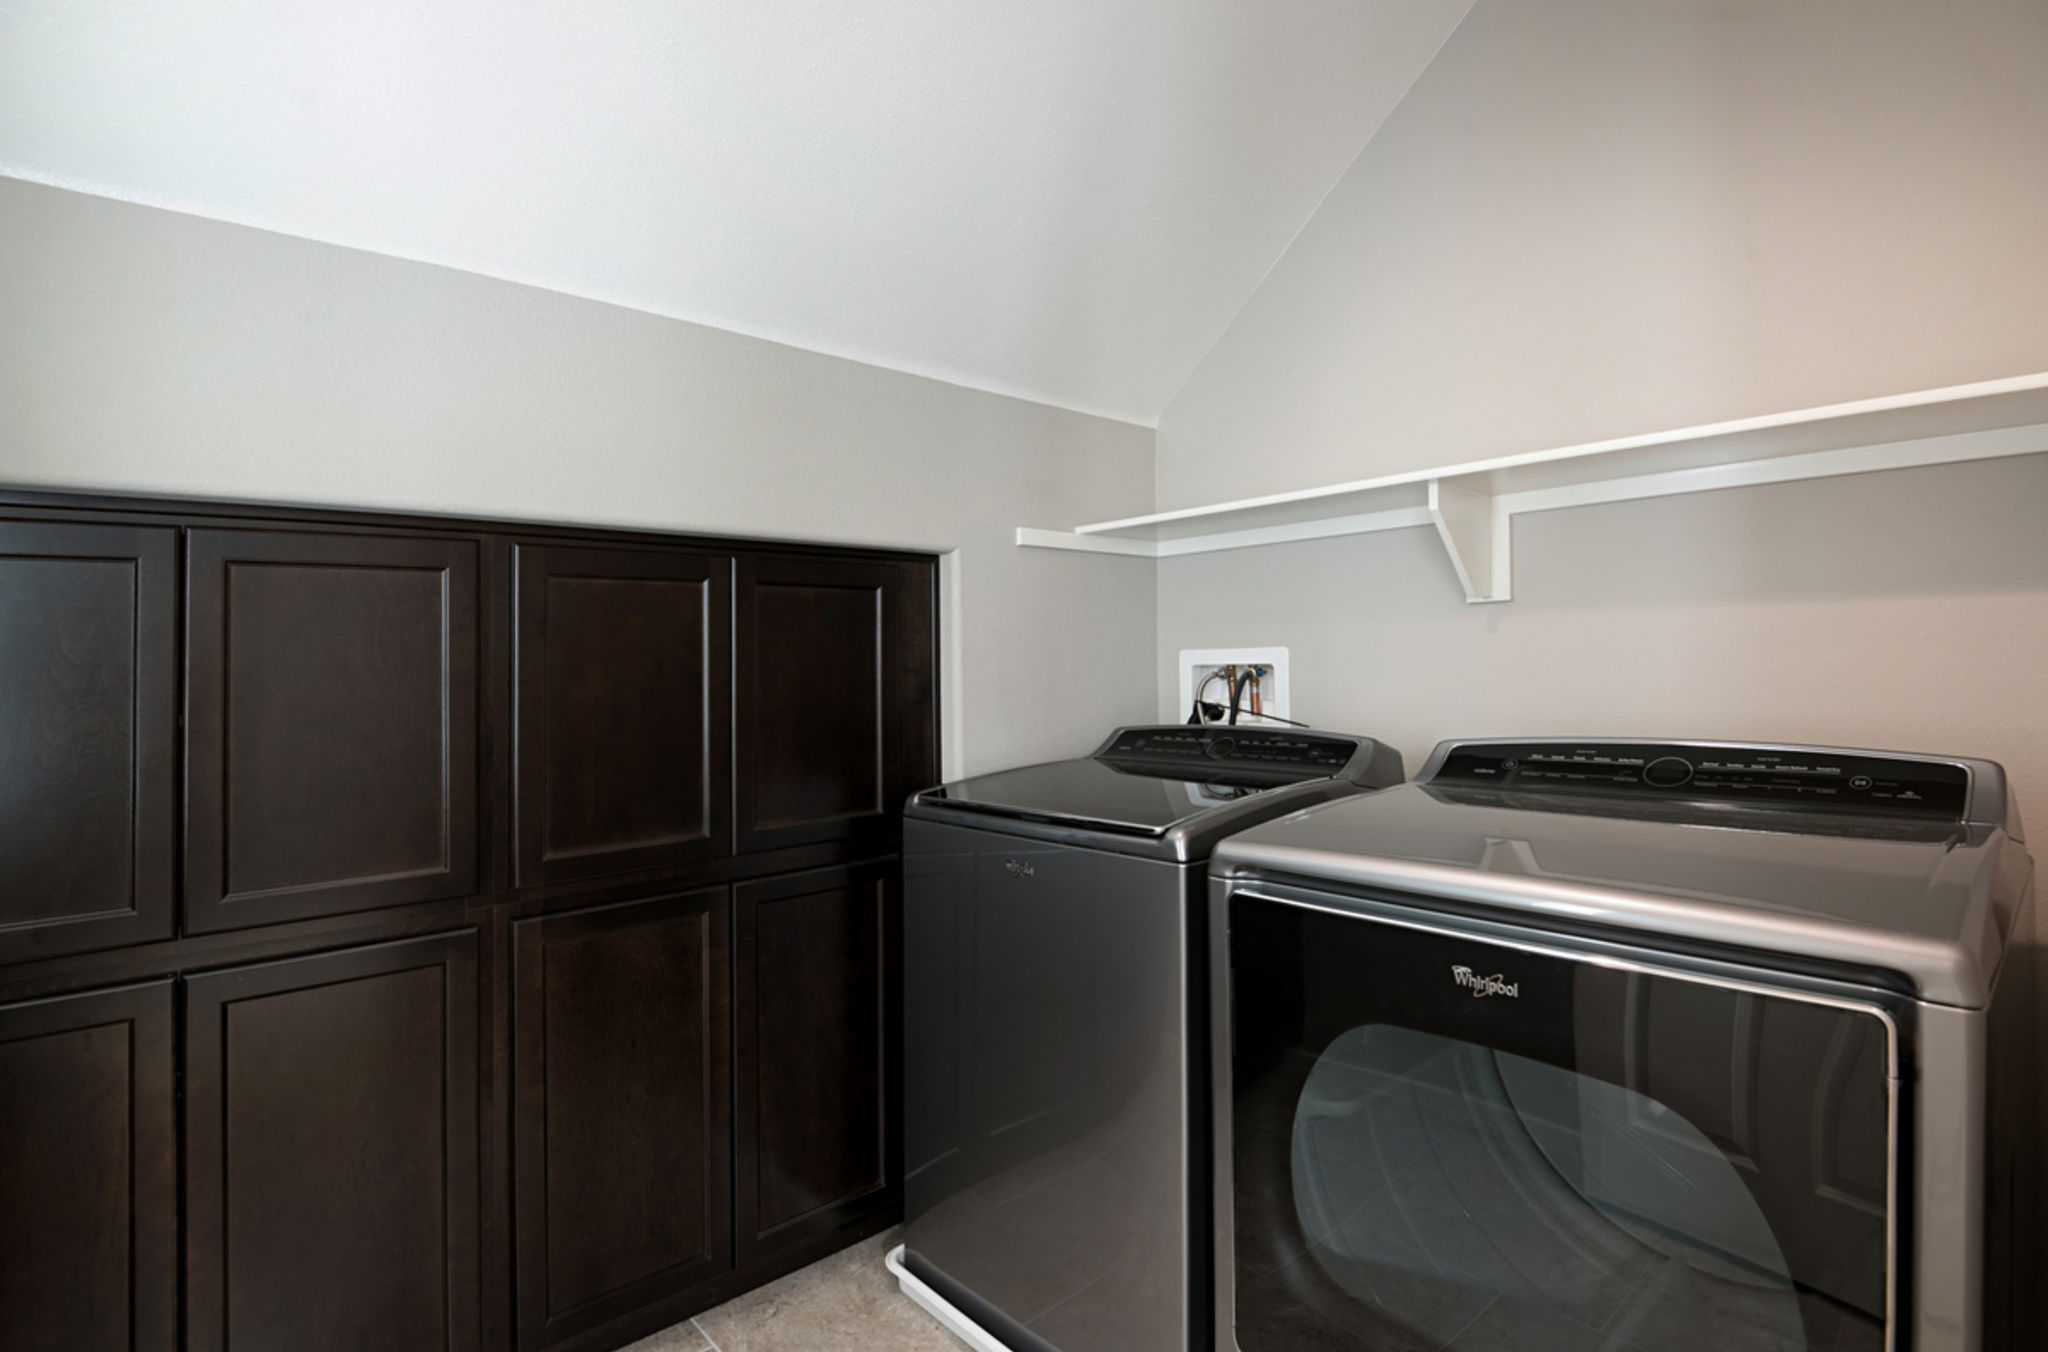 Laundry room cabinets irvine ca - Score Your Home